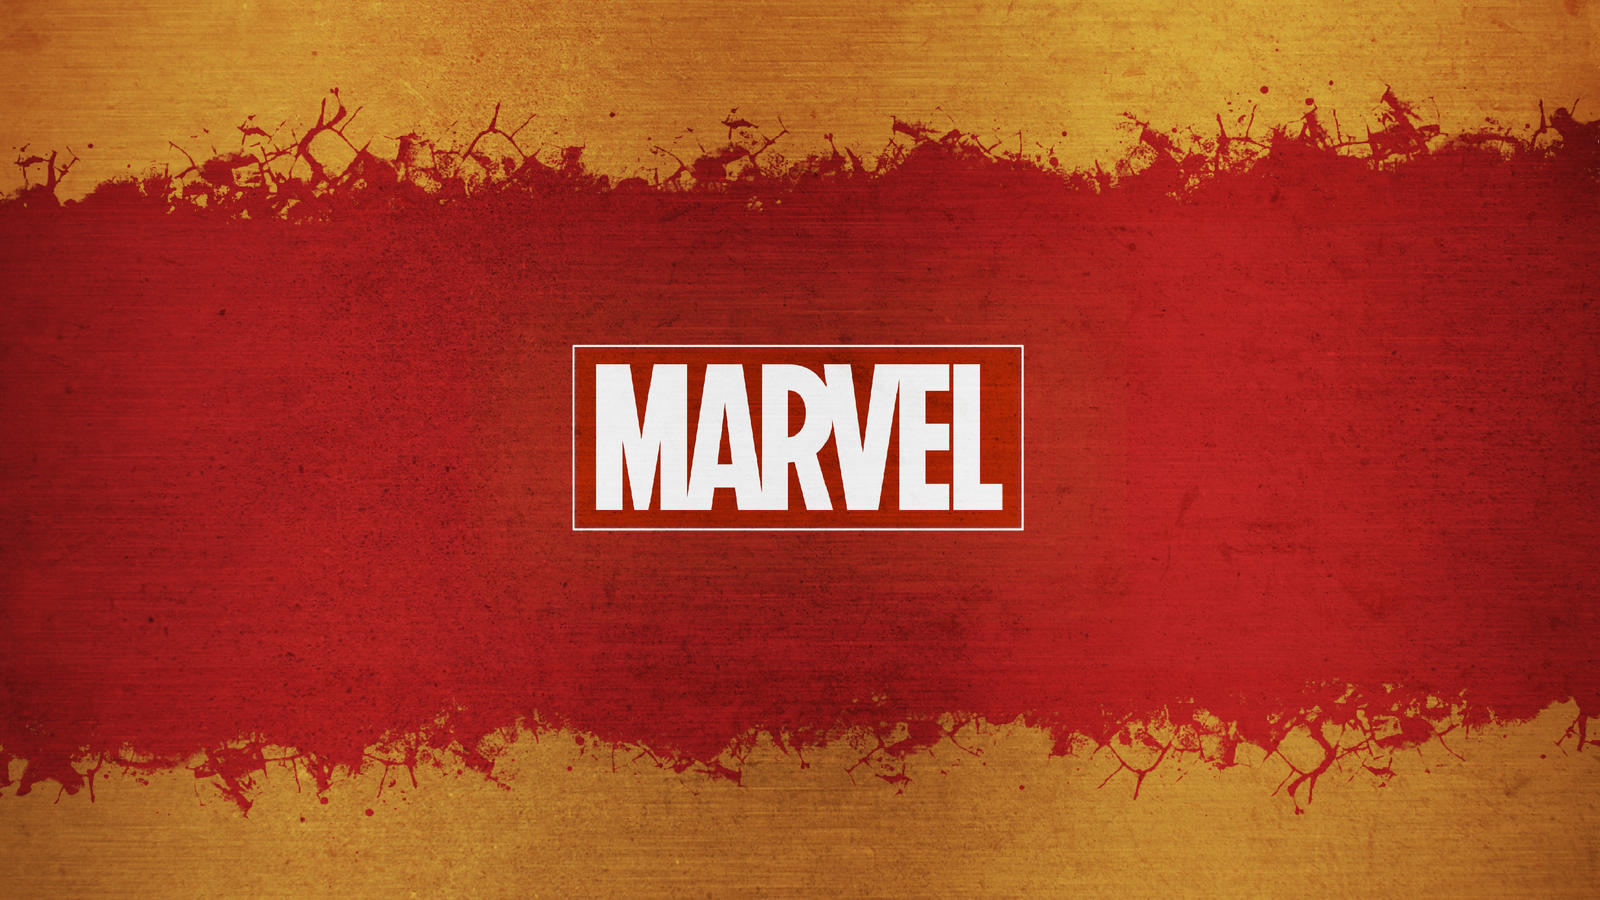 Gold And Red Backgrounds: Marvel Red And Gold Wallpaper By Sylgrio On DeviantArt